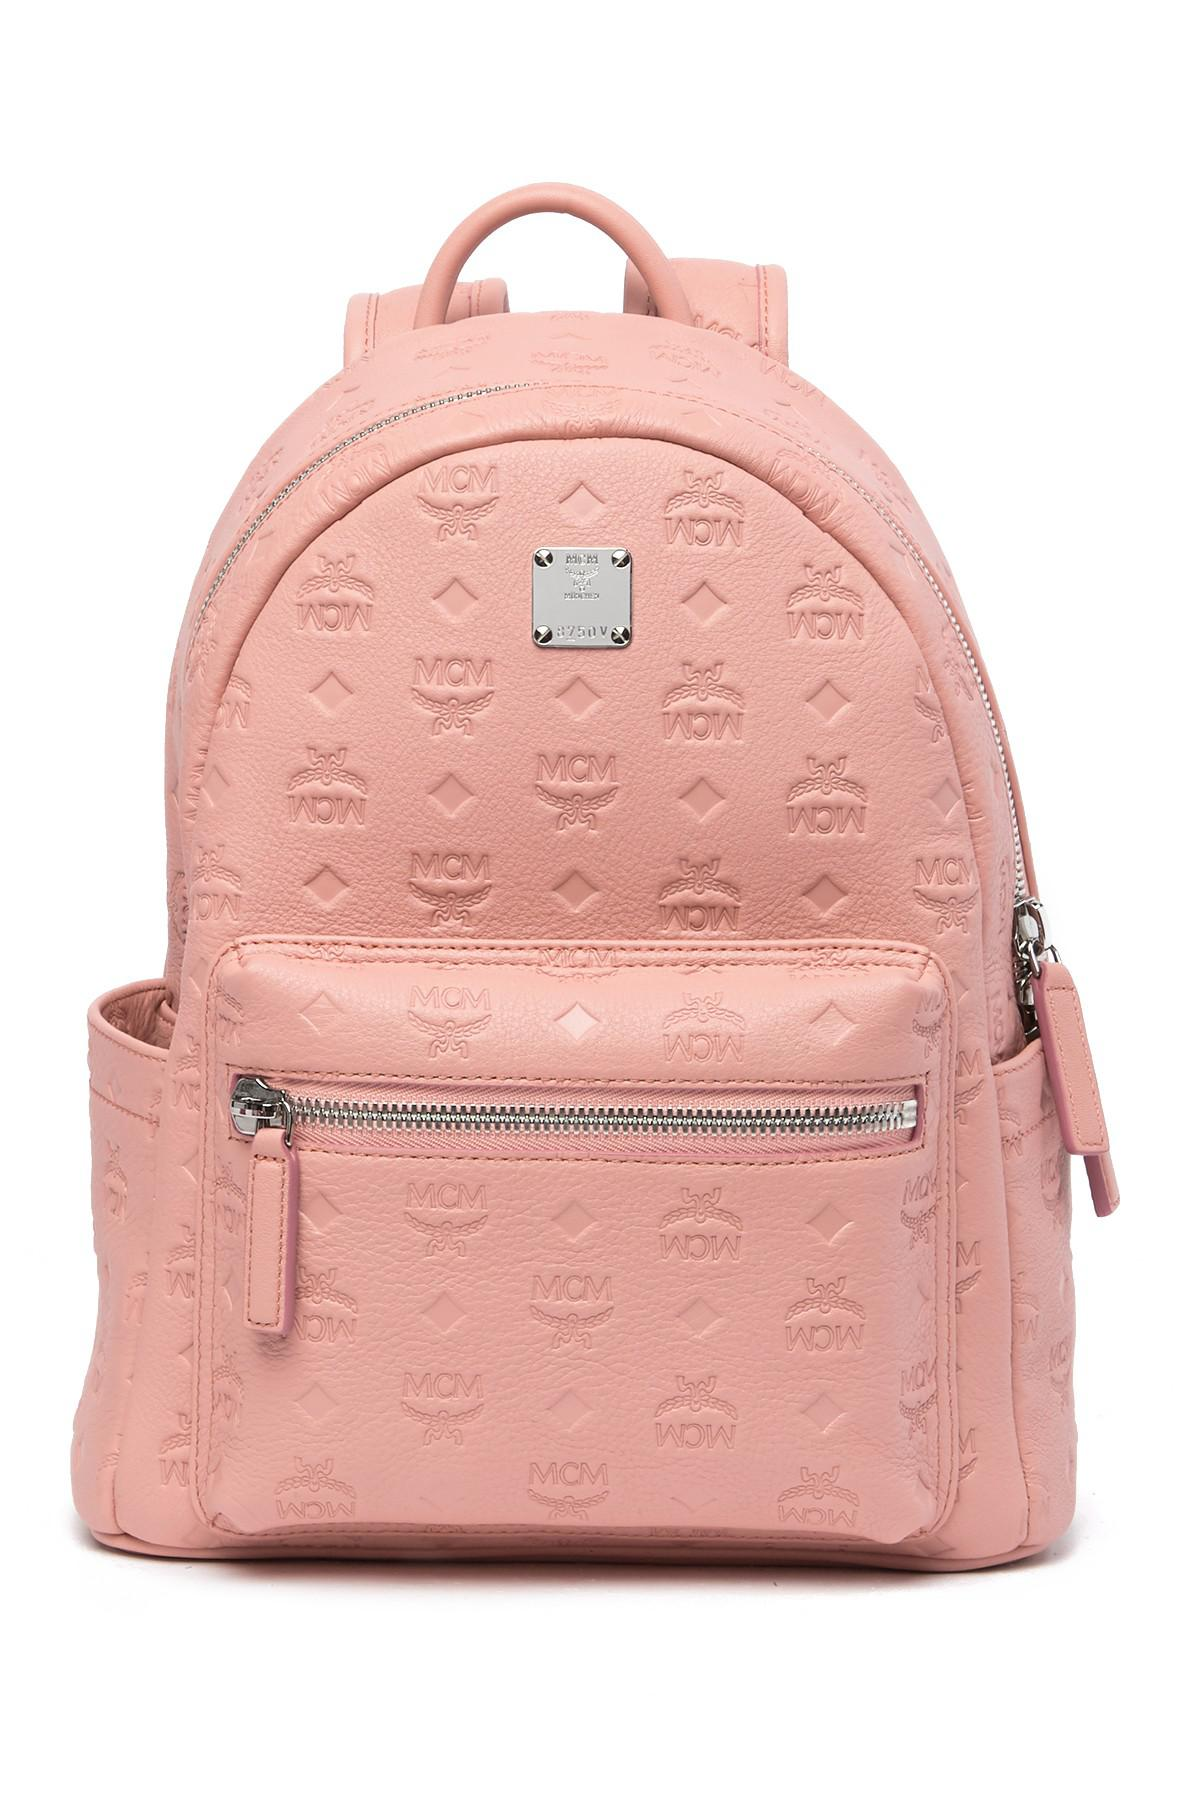 fb147347df MCM. Women s Pink Ottomar Monogrammed Leather Backpack.  795  390 From Nordstrom  Rack